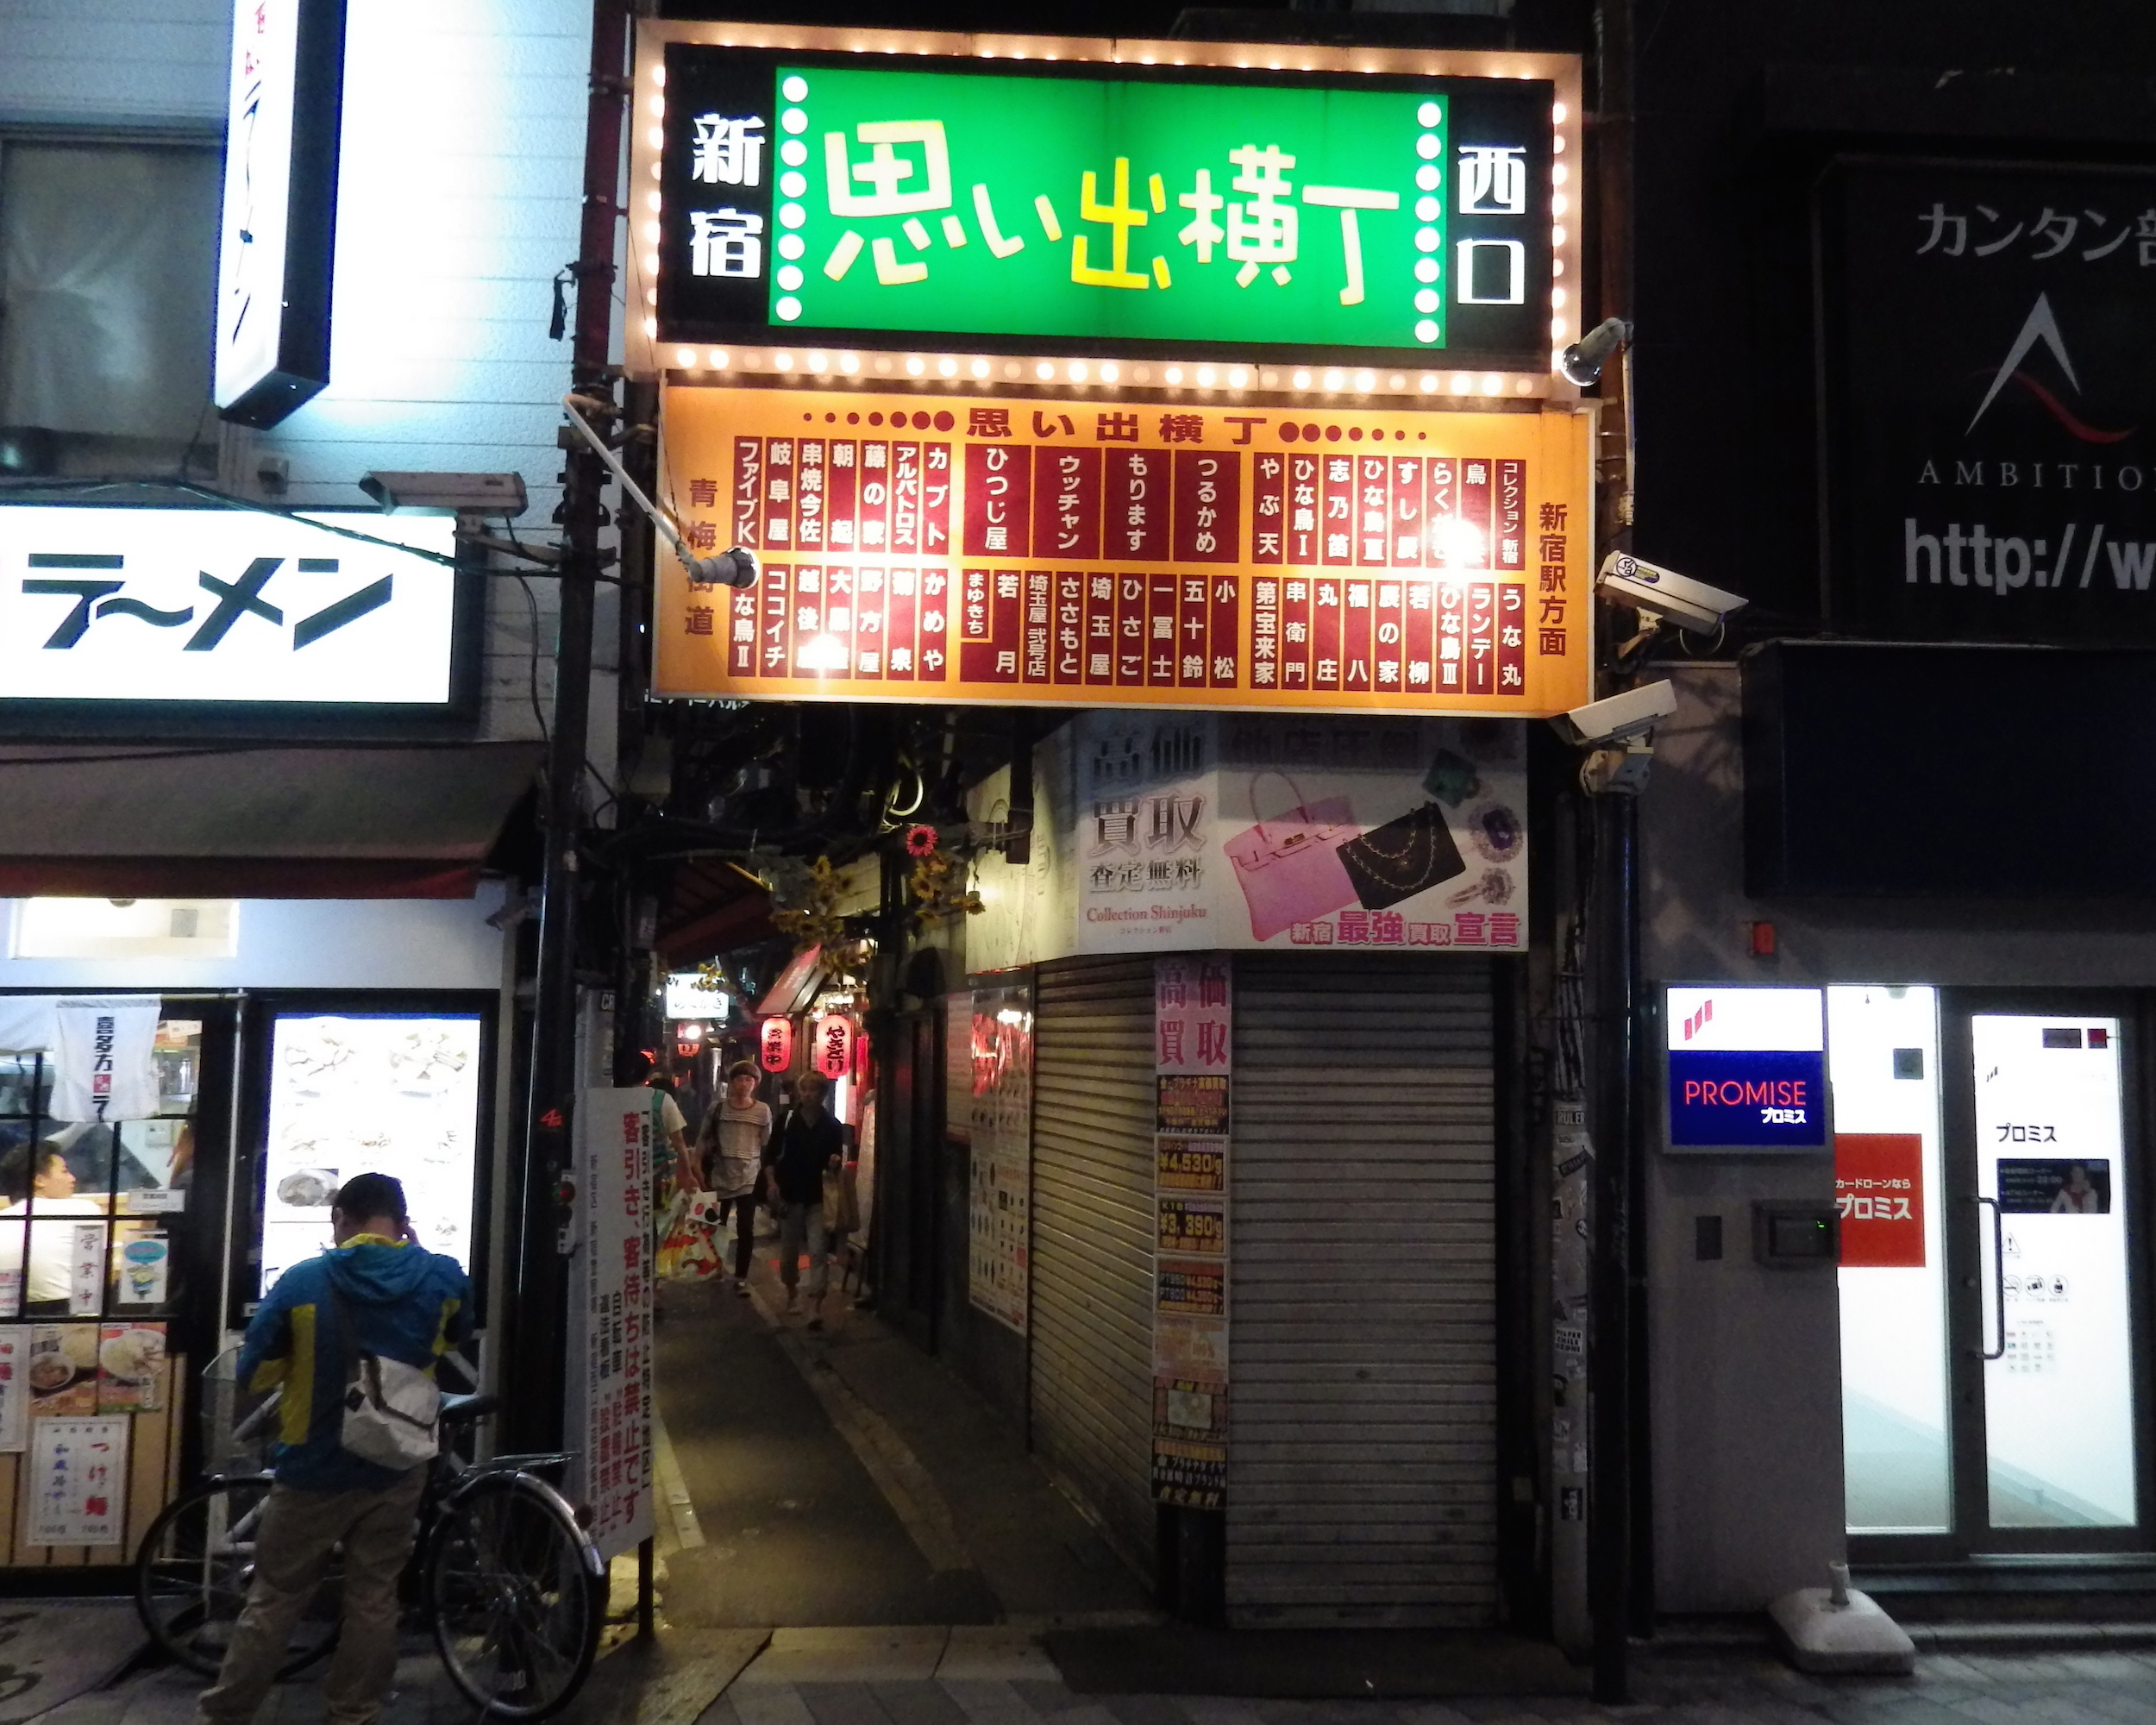 The entrance to Omoide Yokocho.